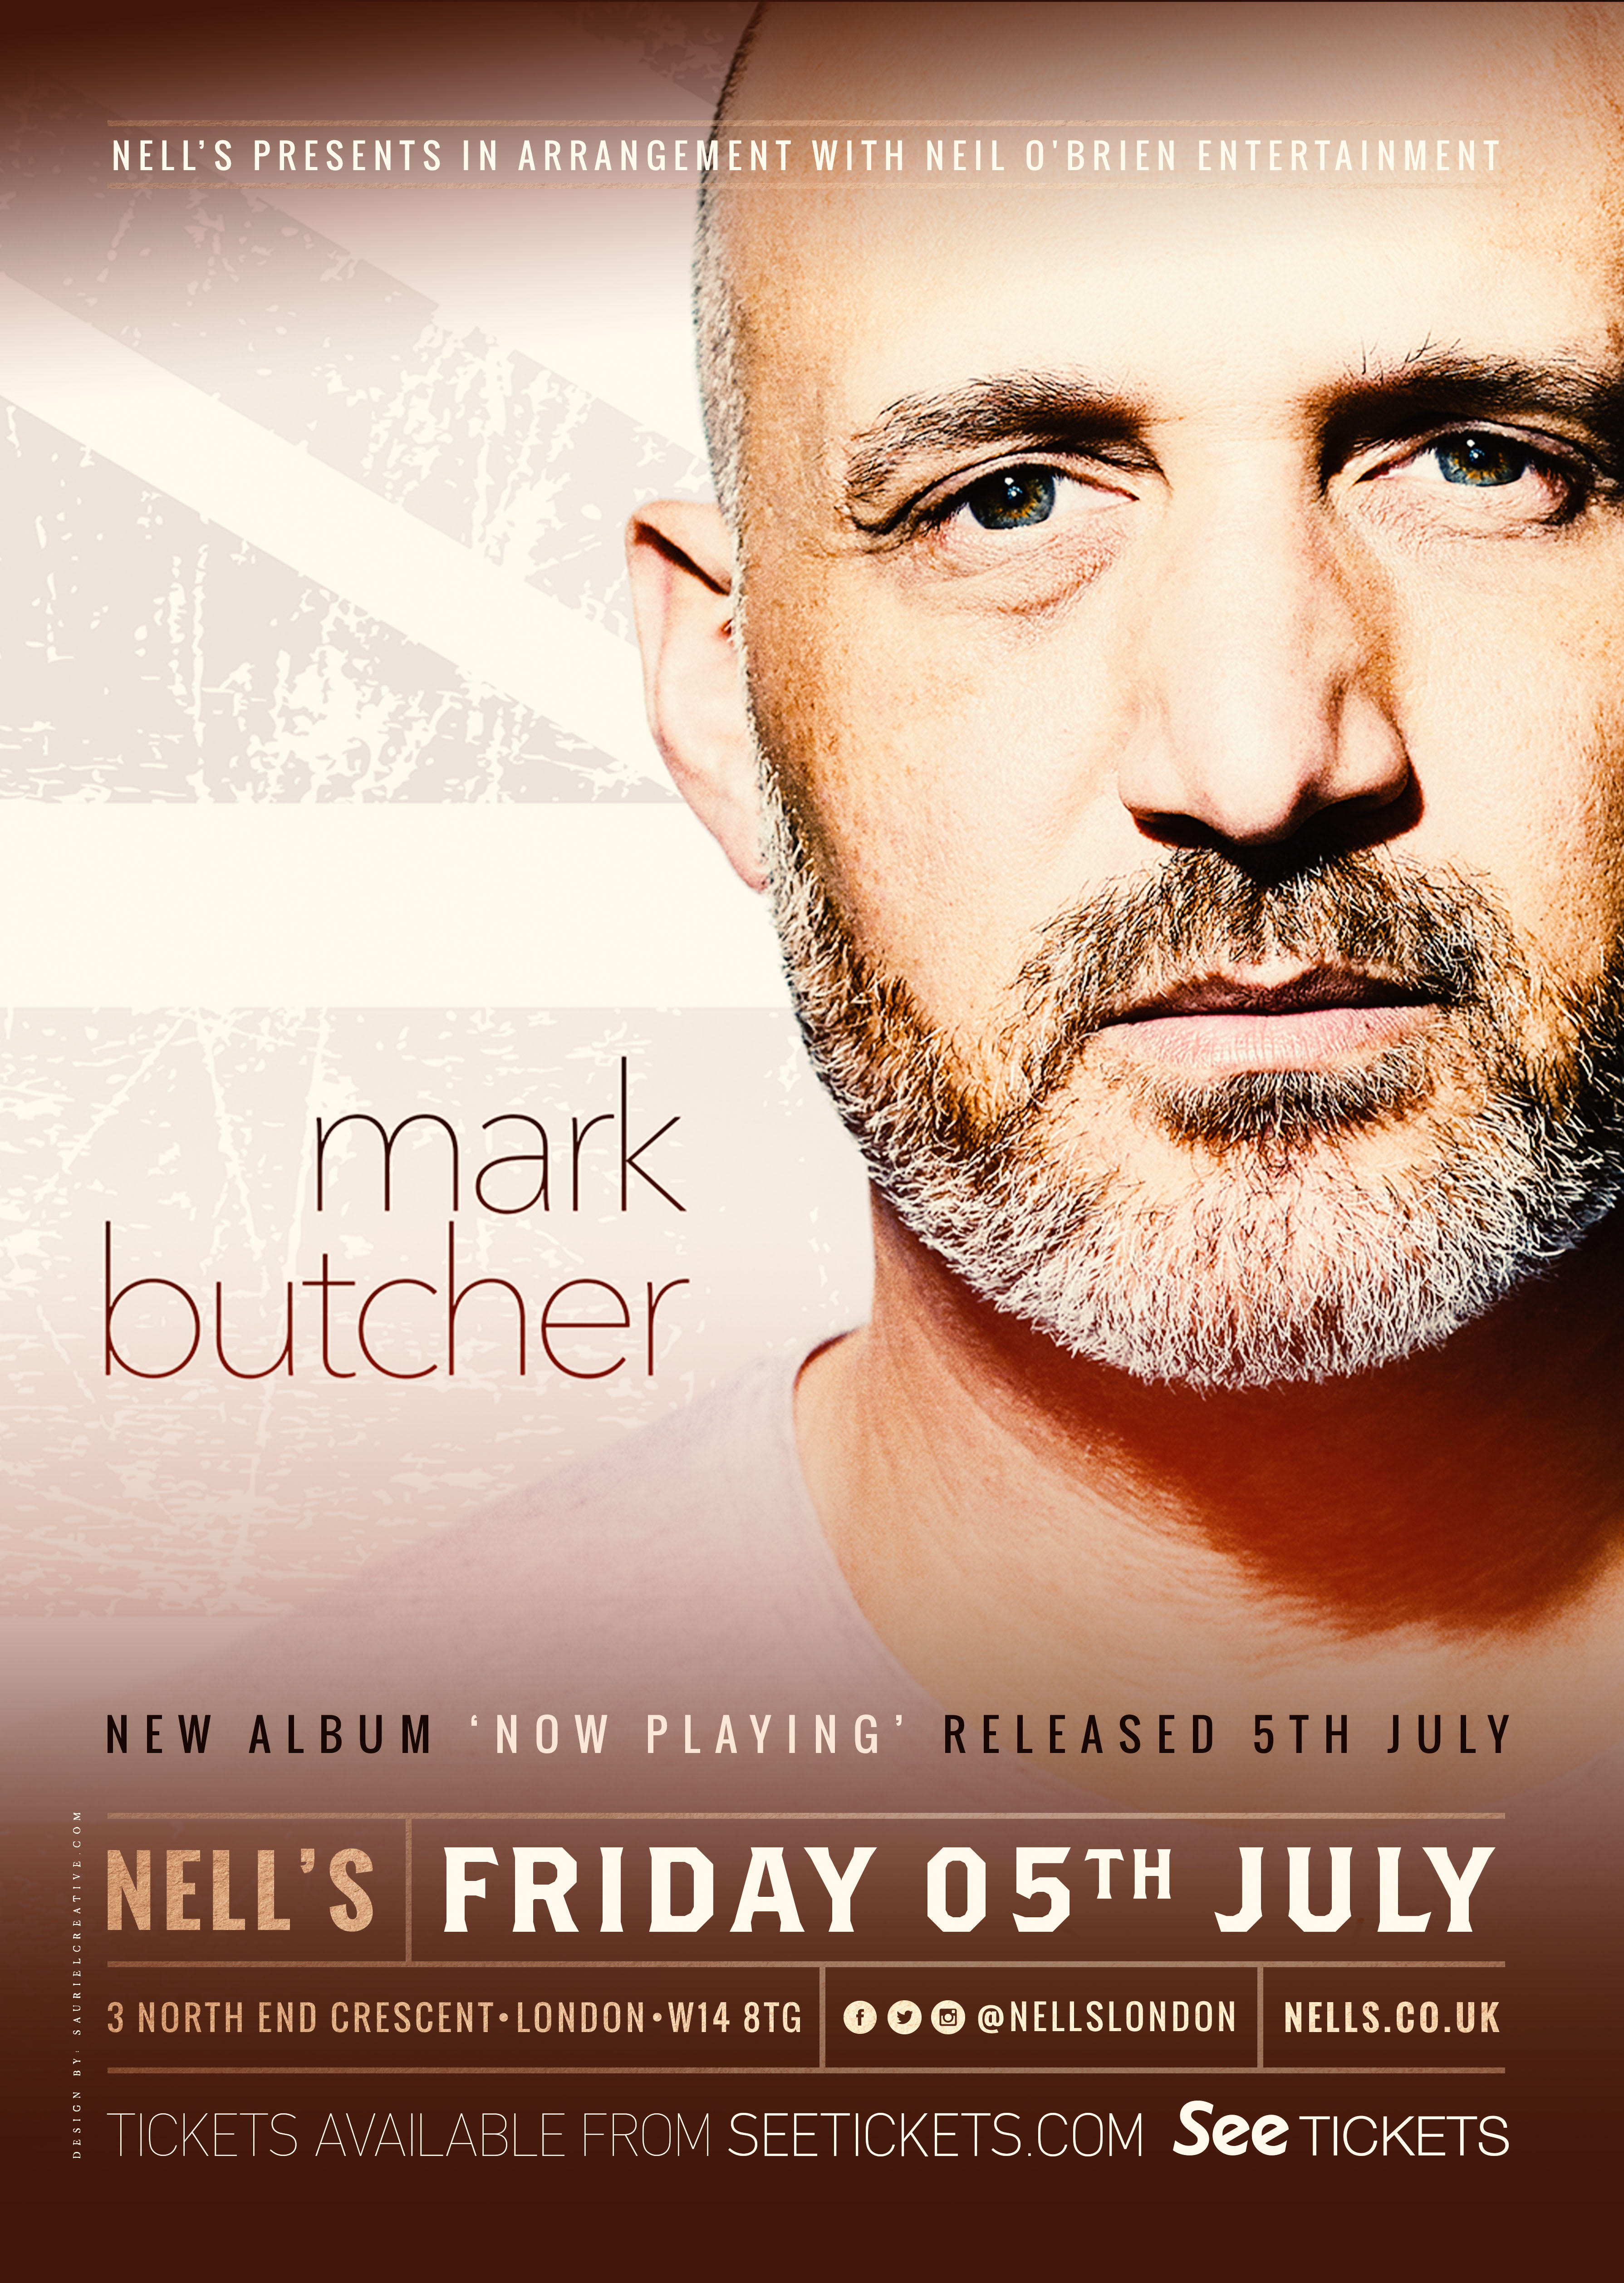 Mark Butcher 'Now Playing' album launch party - 5th July 2019